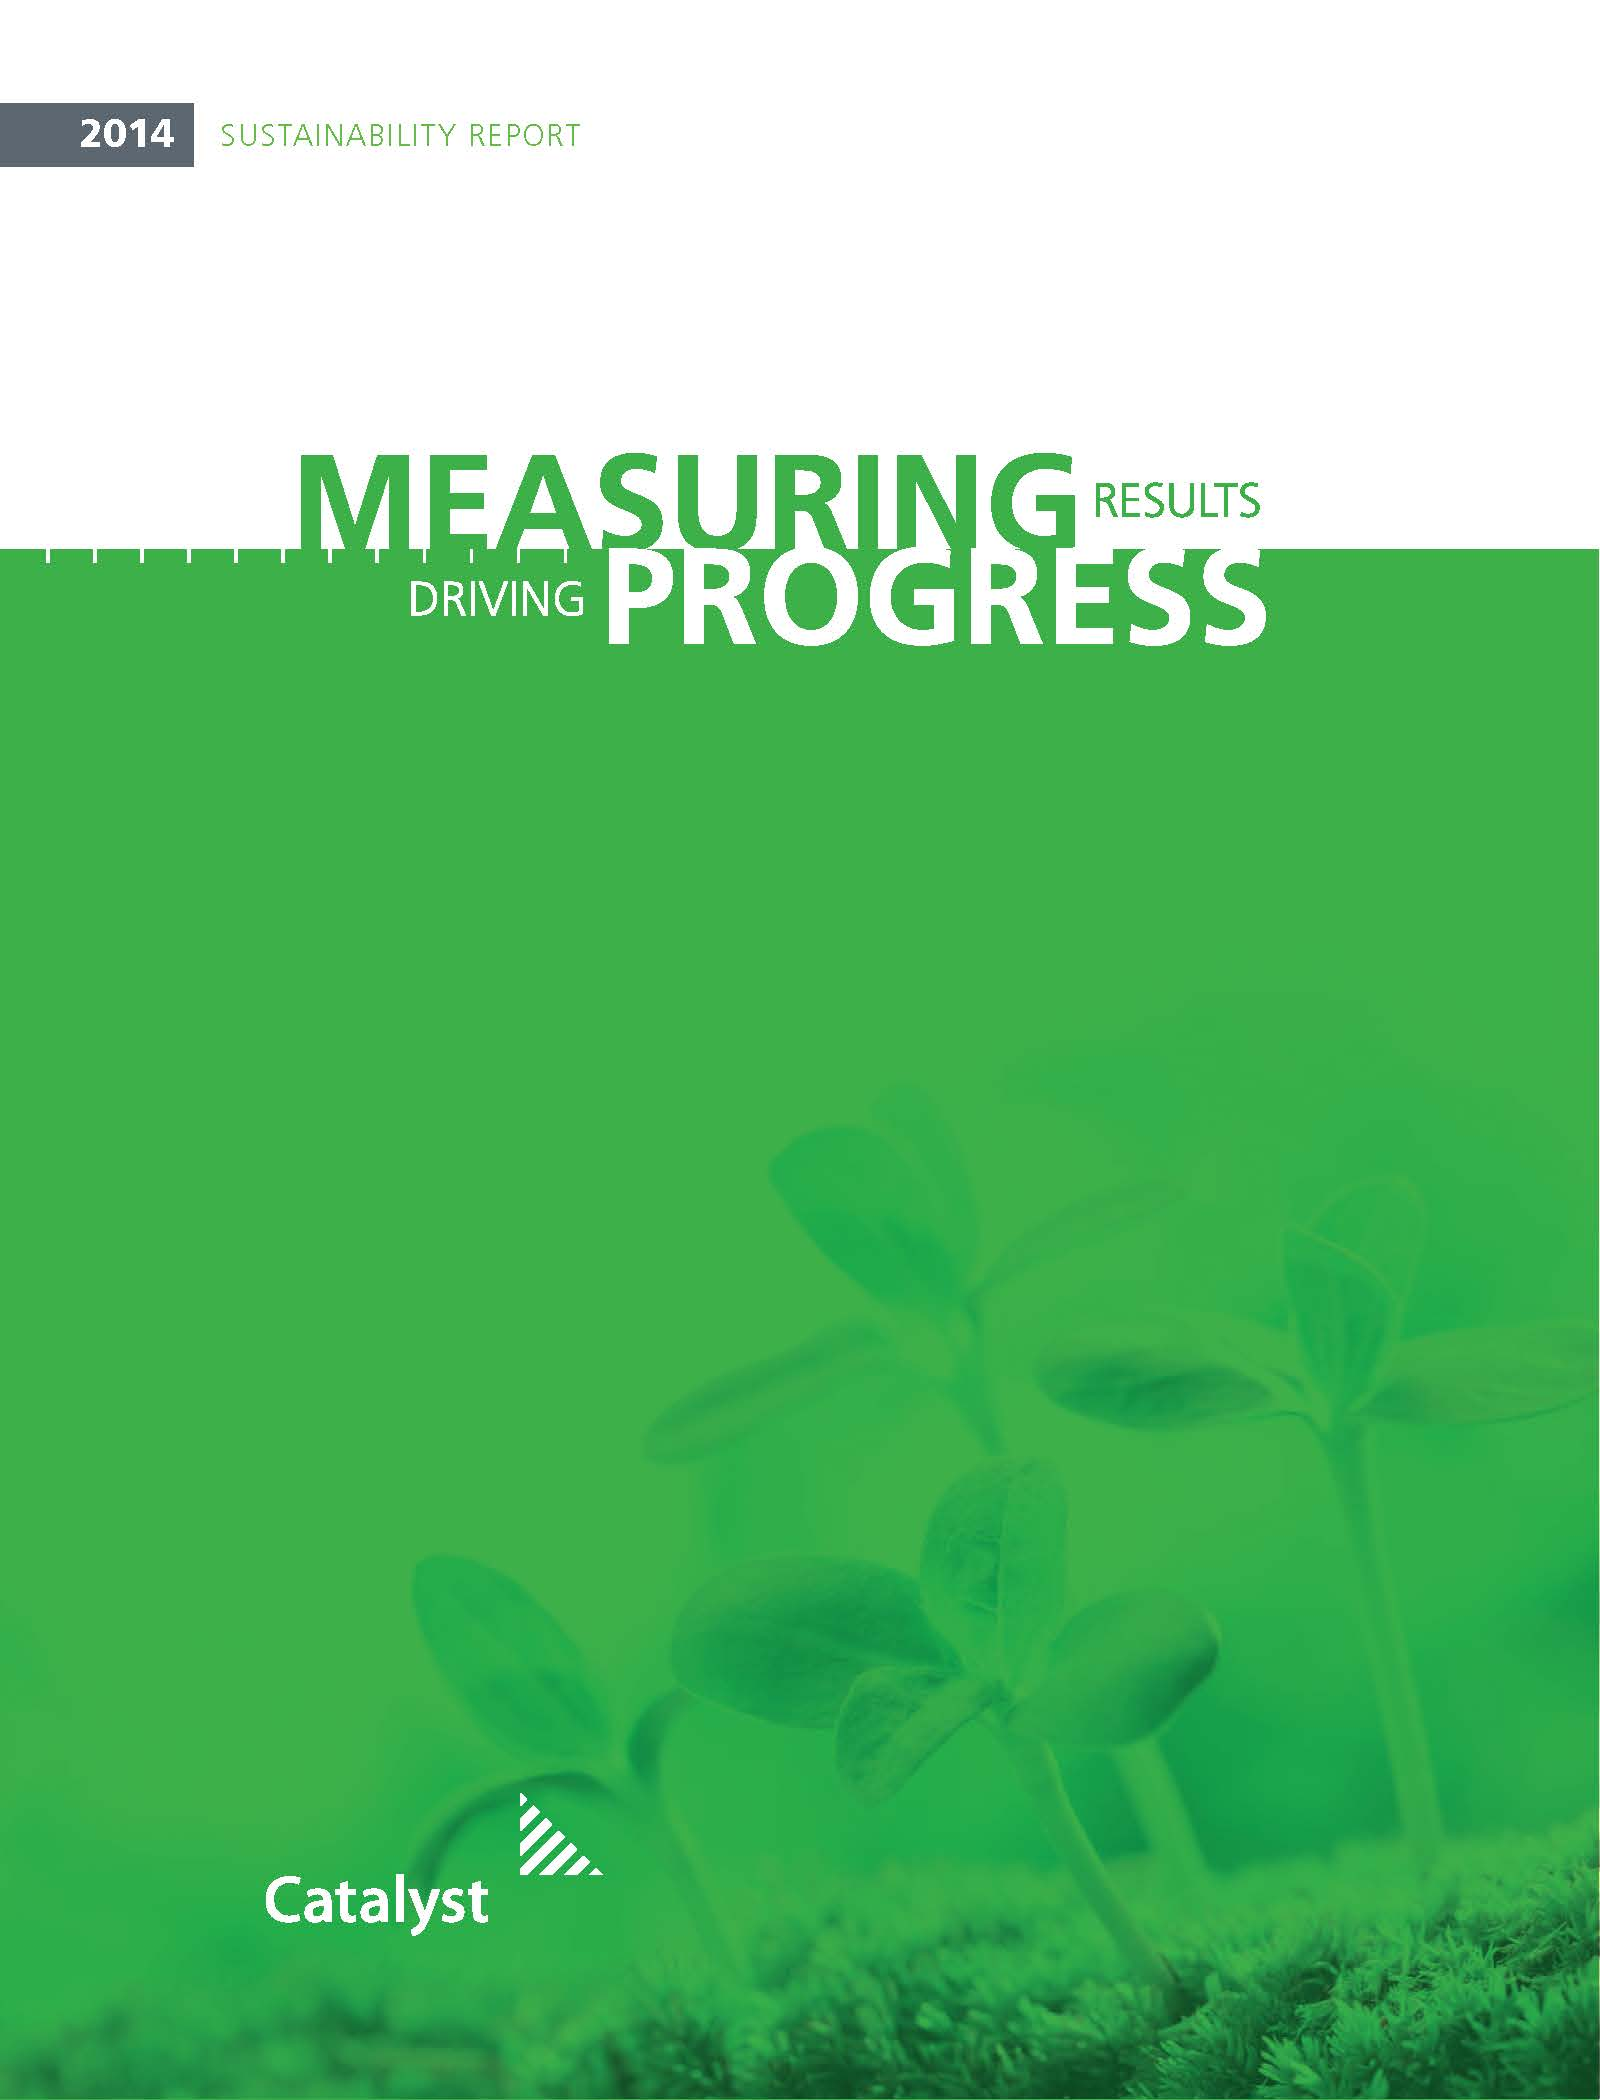 essay on sustainability reporting Free essay: contents executive summary 1 introduction 2 defining sustainability  2 what sustainability means to woolworths 3 corporate.